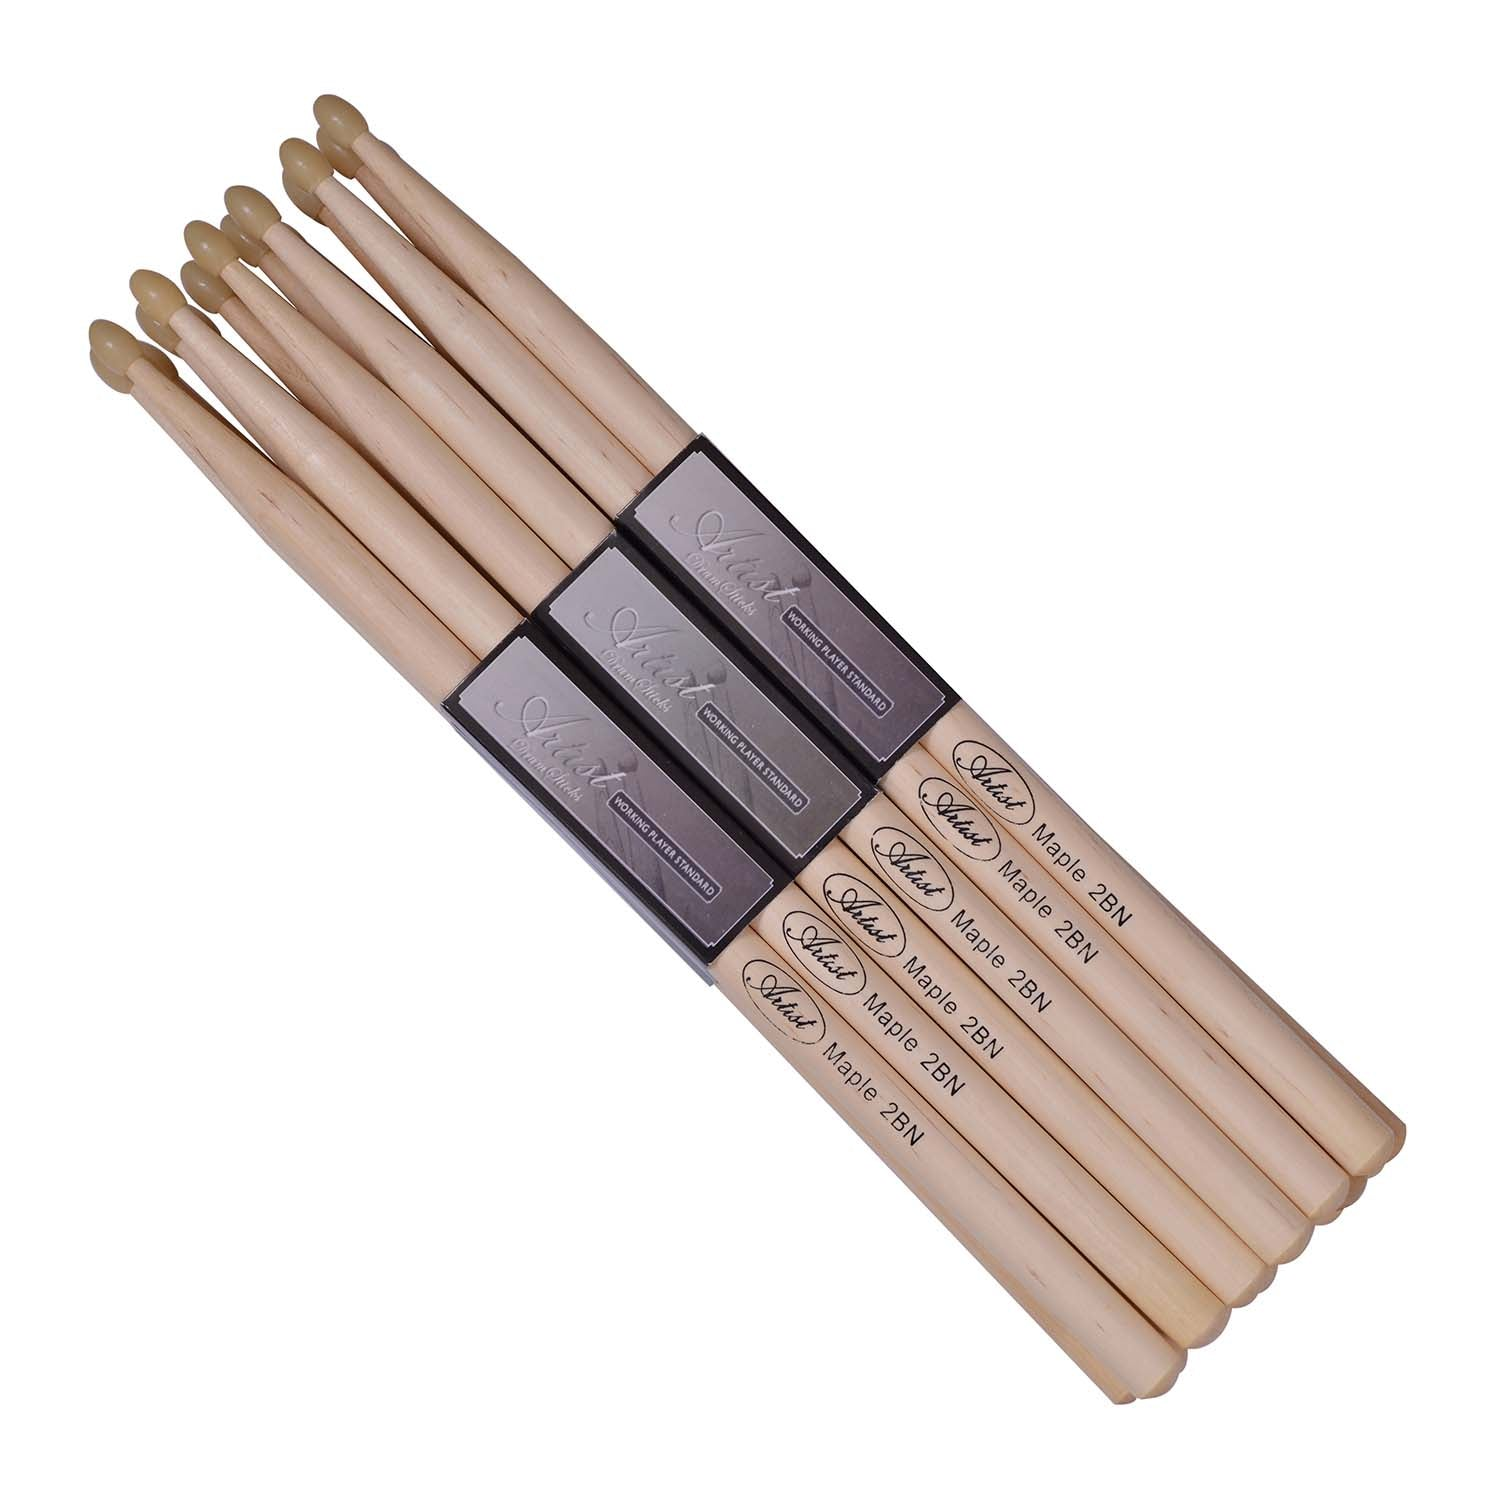 Artist DSM2BN 12 Pairs of Maple Drumsticks with Nylon Tips